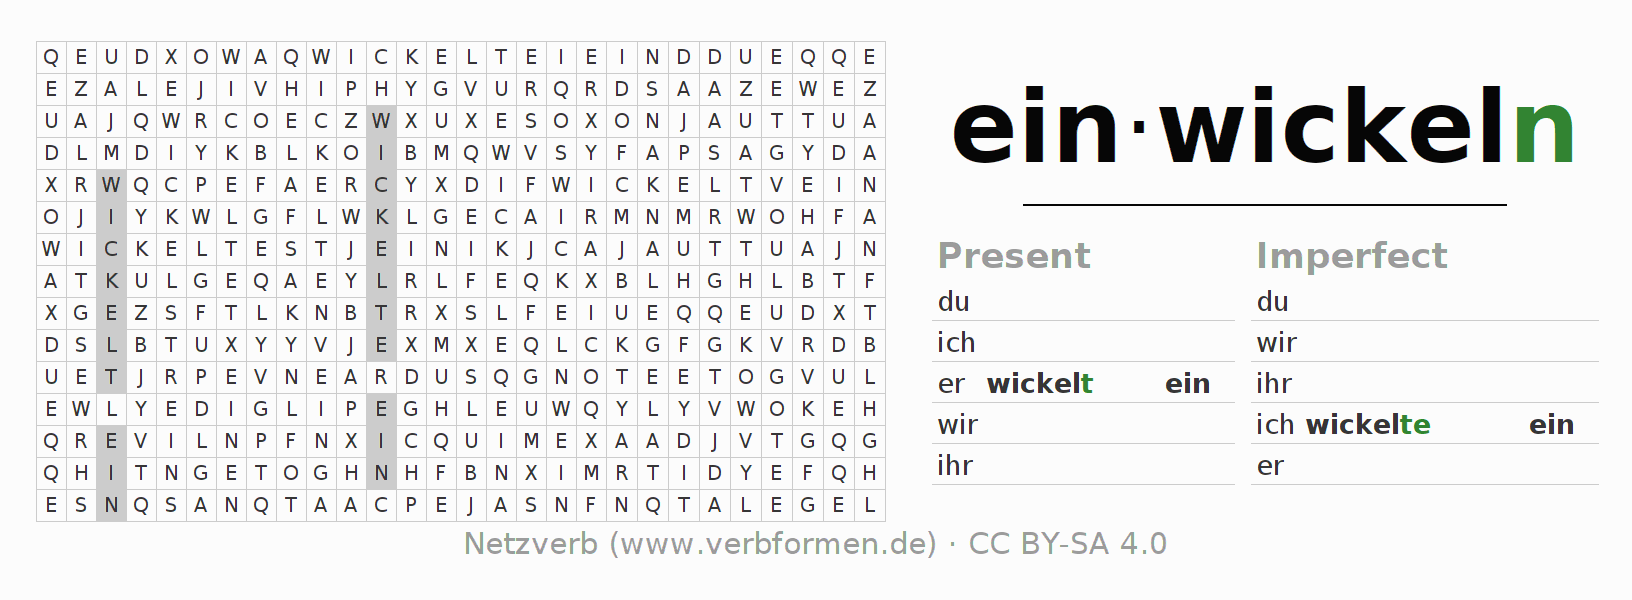 Word search puzzle for the conjugation of the verb einwickeln